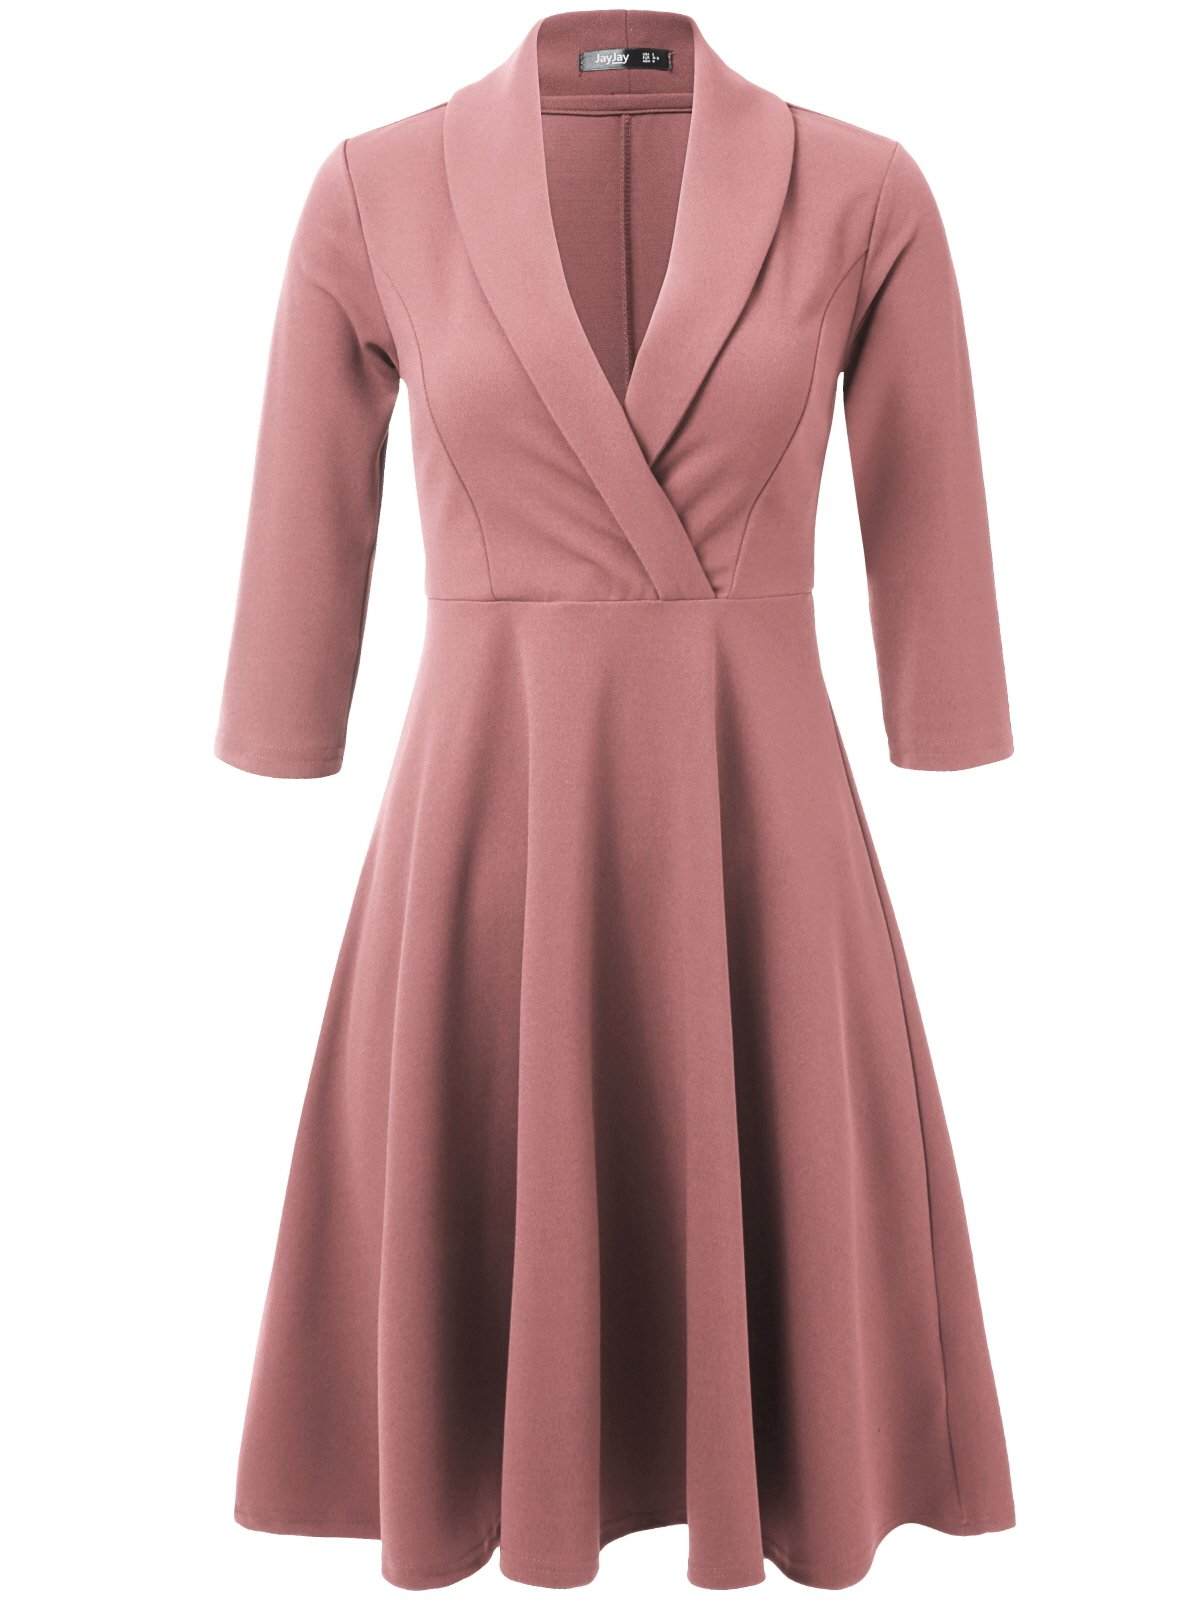 JayJay Women 3/4 Sleeve Wear to Work Lapel Party Fit and Flare Faux Wrap Dress,Rosepink,S